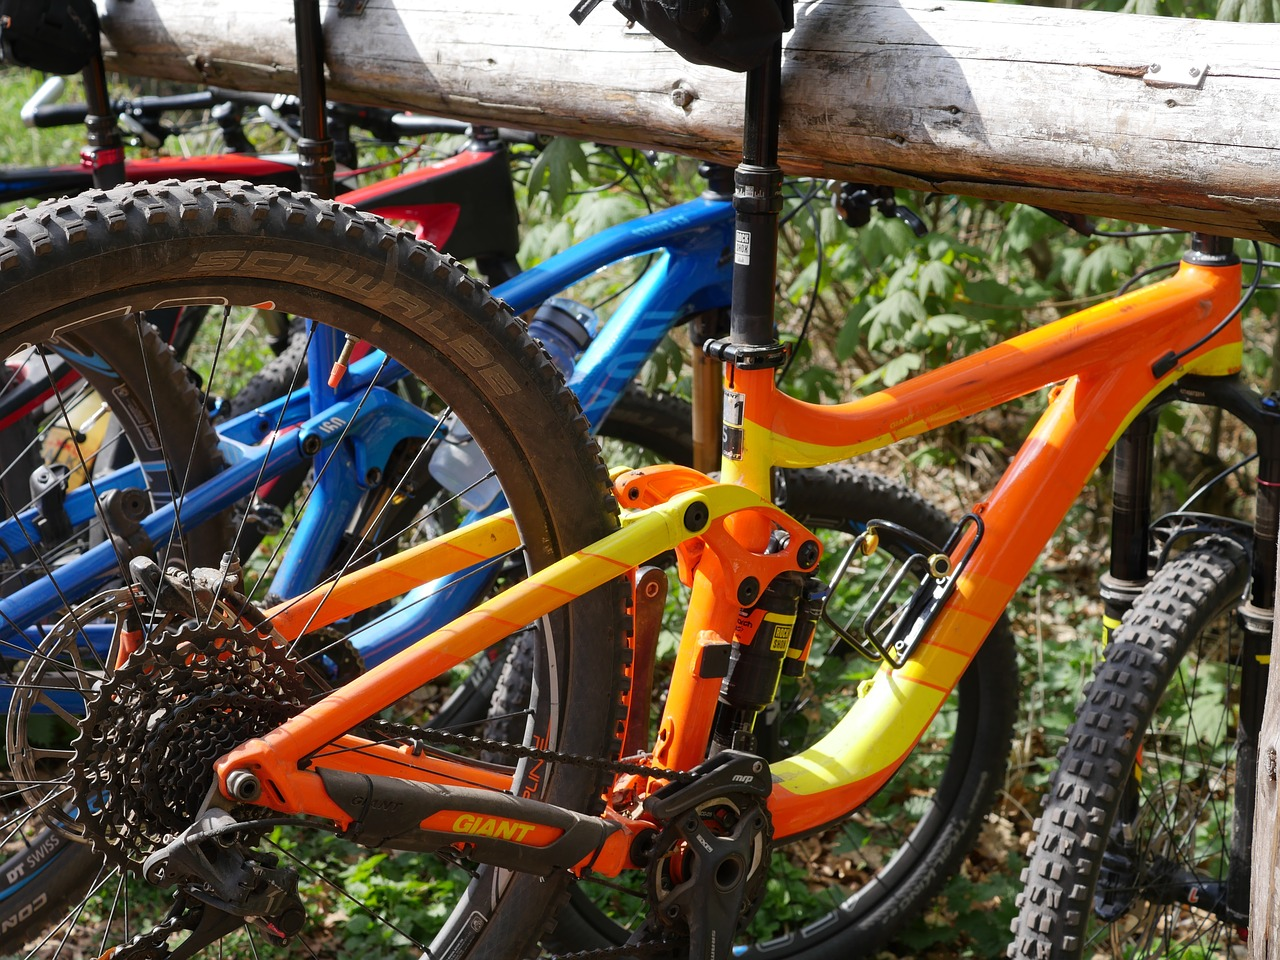 Rent a bike in Sedona